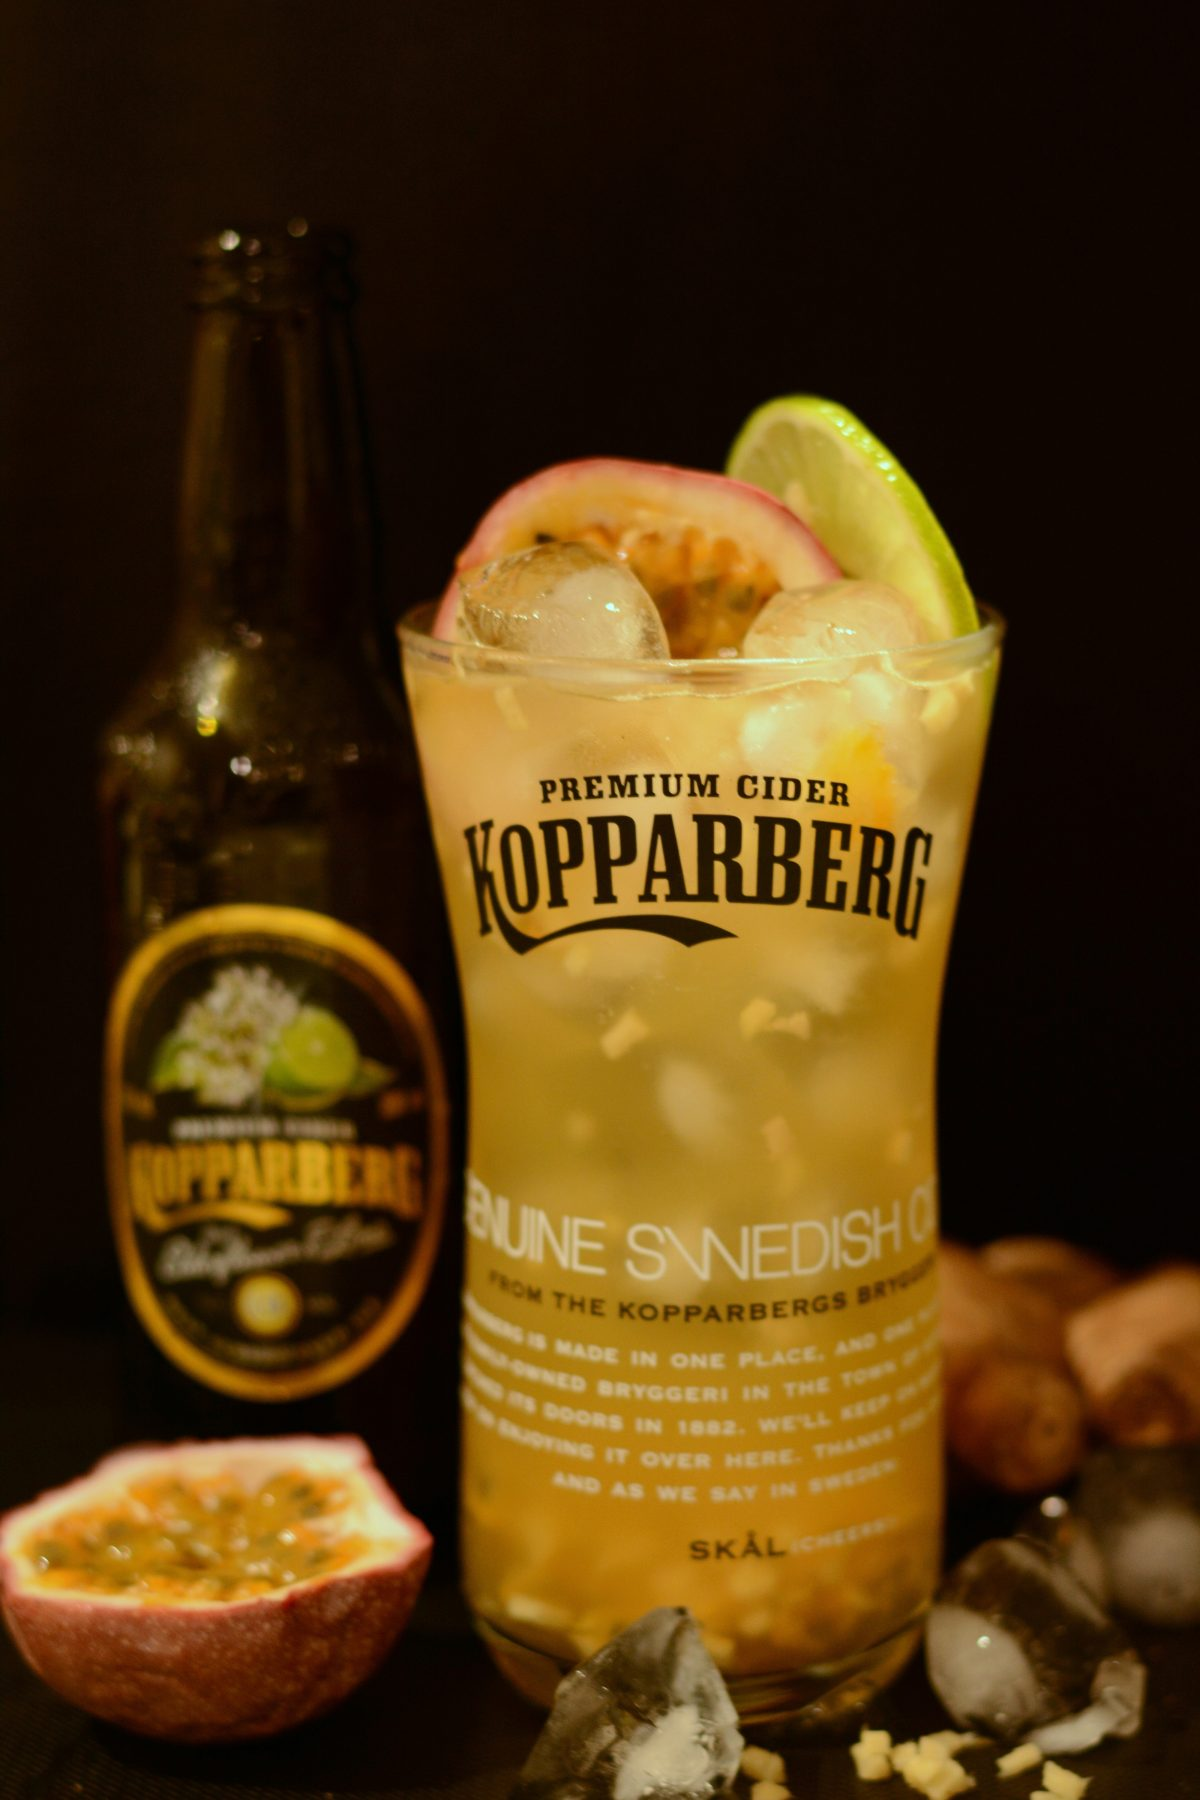 Swedish Mule, a Kopparberg Elderflower & Lime Cocktail - Freshness and slightly spicy undertones from the ginger, zingy bursts of passionfruit and the sweet refreshing vibrancy of the elderflower and lime - thespiceadventuress.com